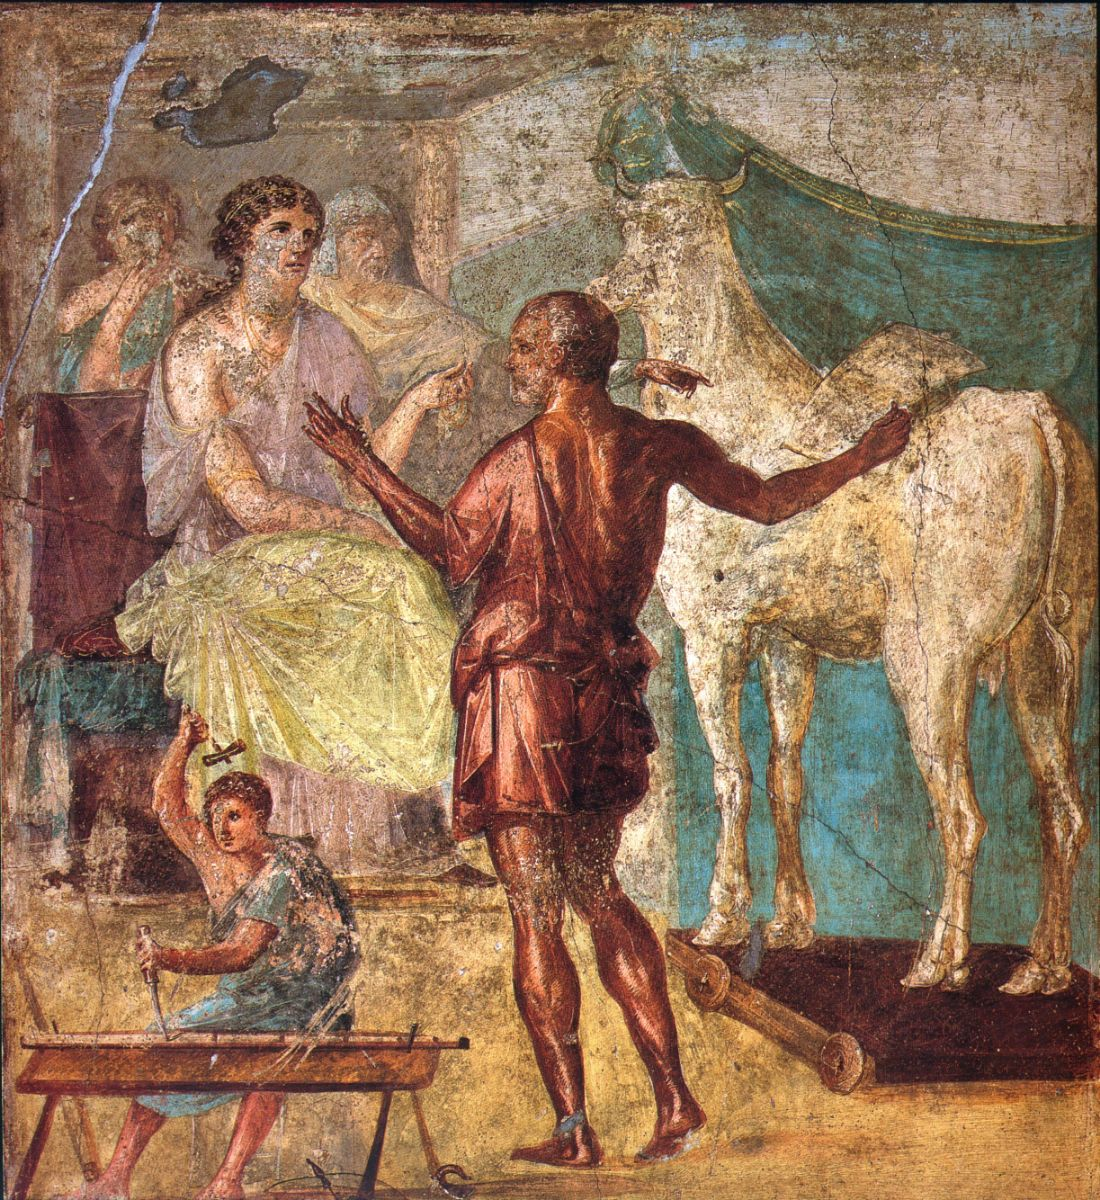 Daedalus presenting Pasiphaë with the Wooden Cow